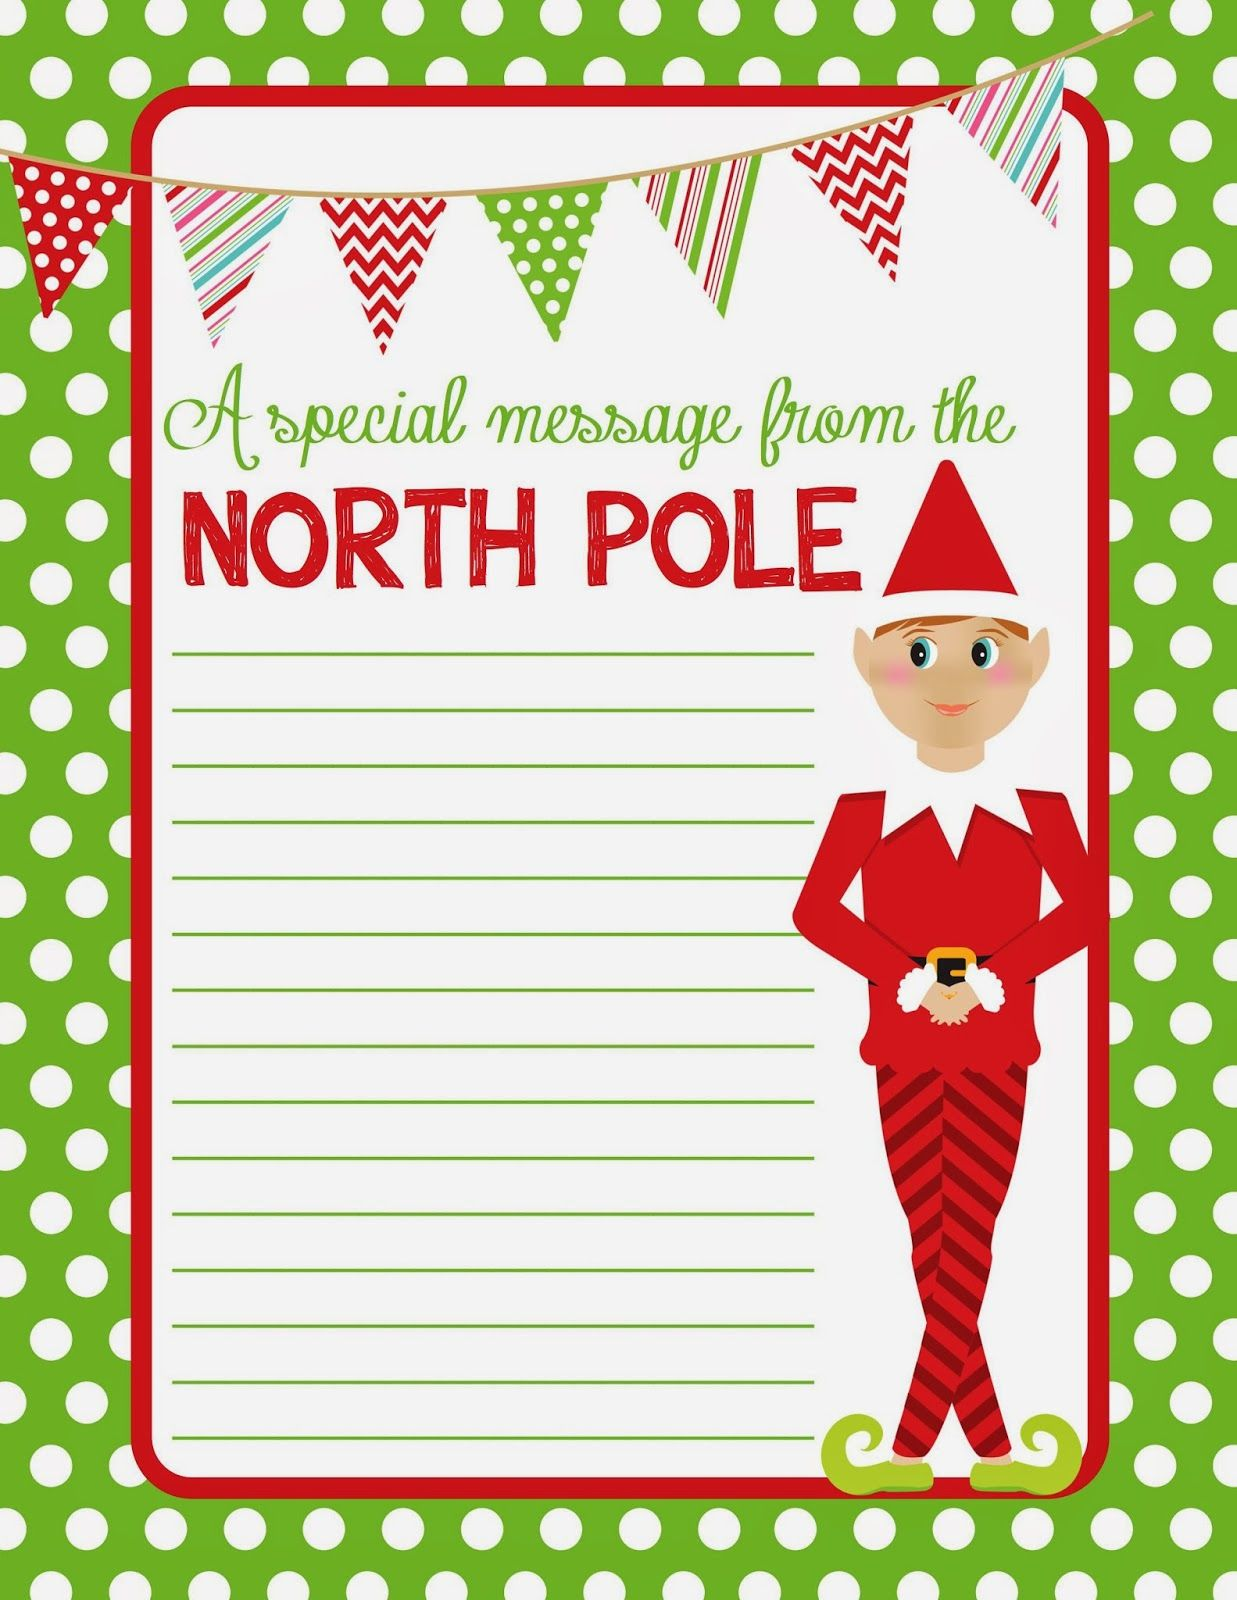 4 Best Images of Elf On The Shelf Free Printable Christmas